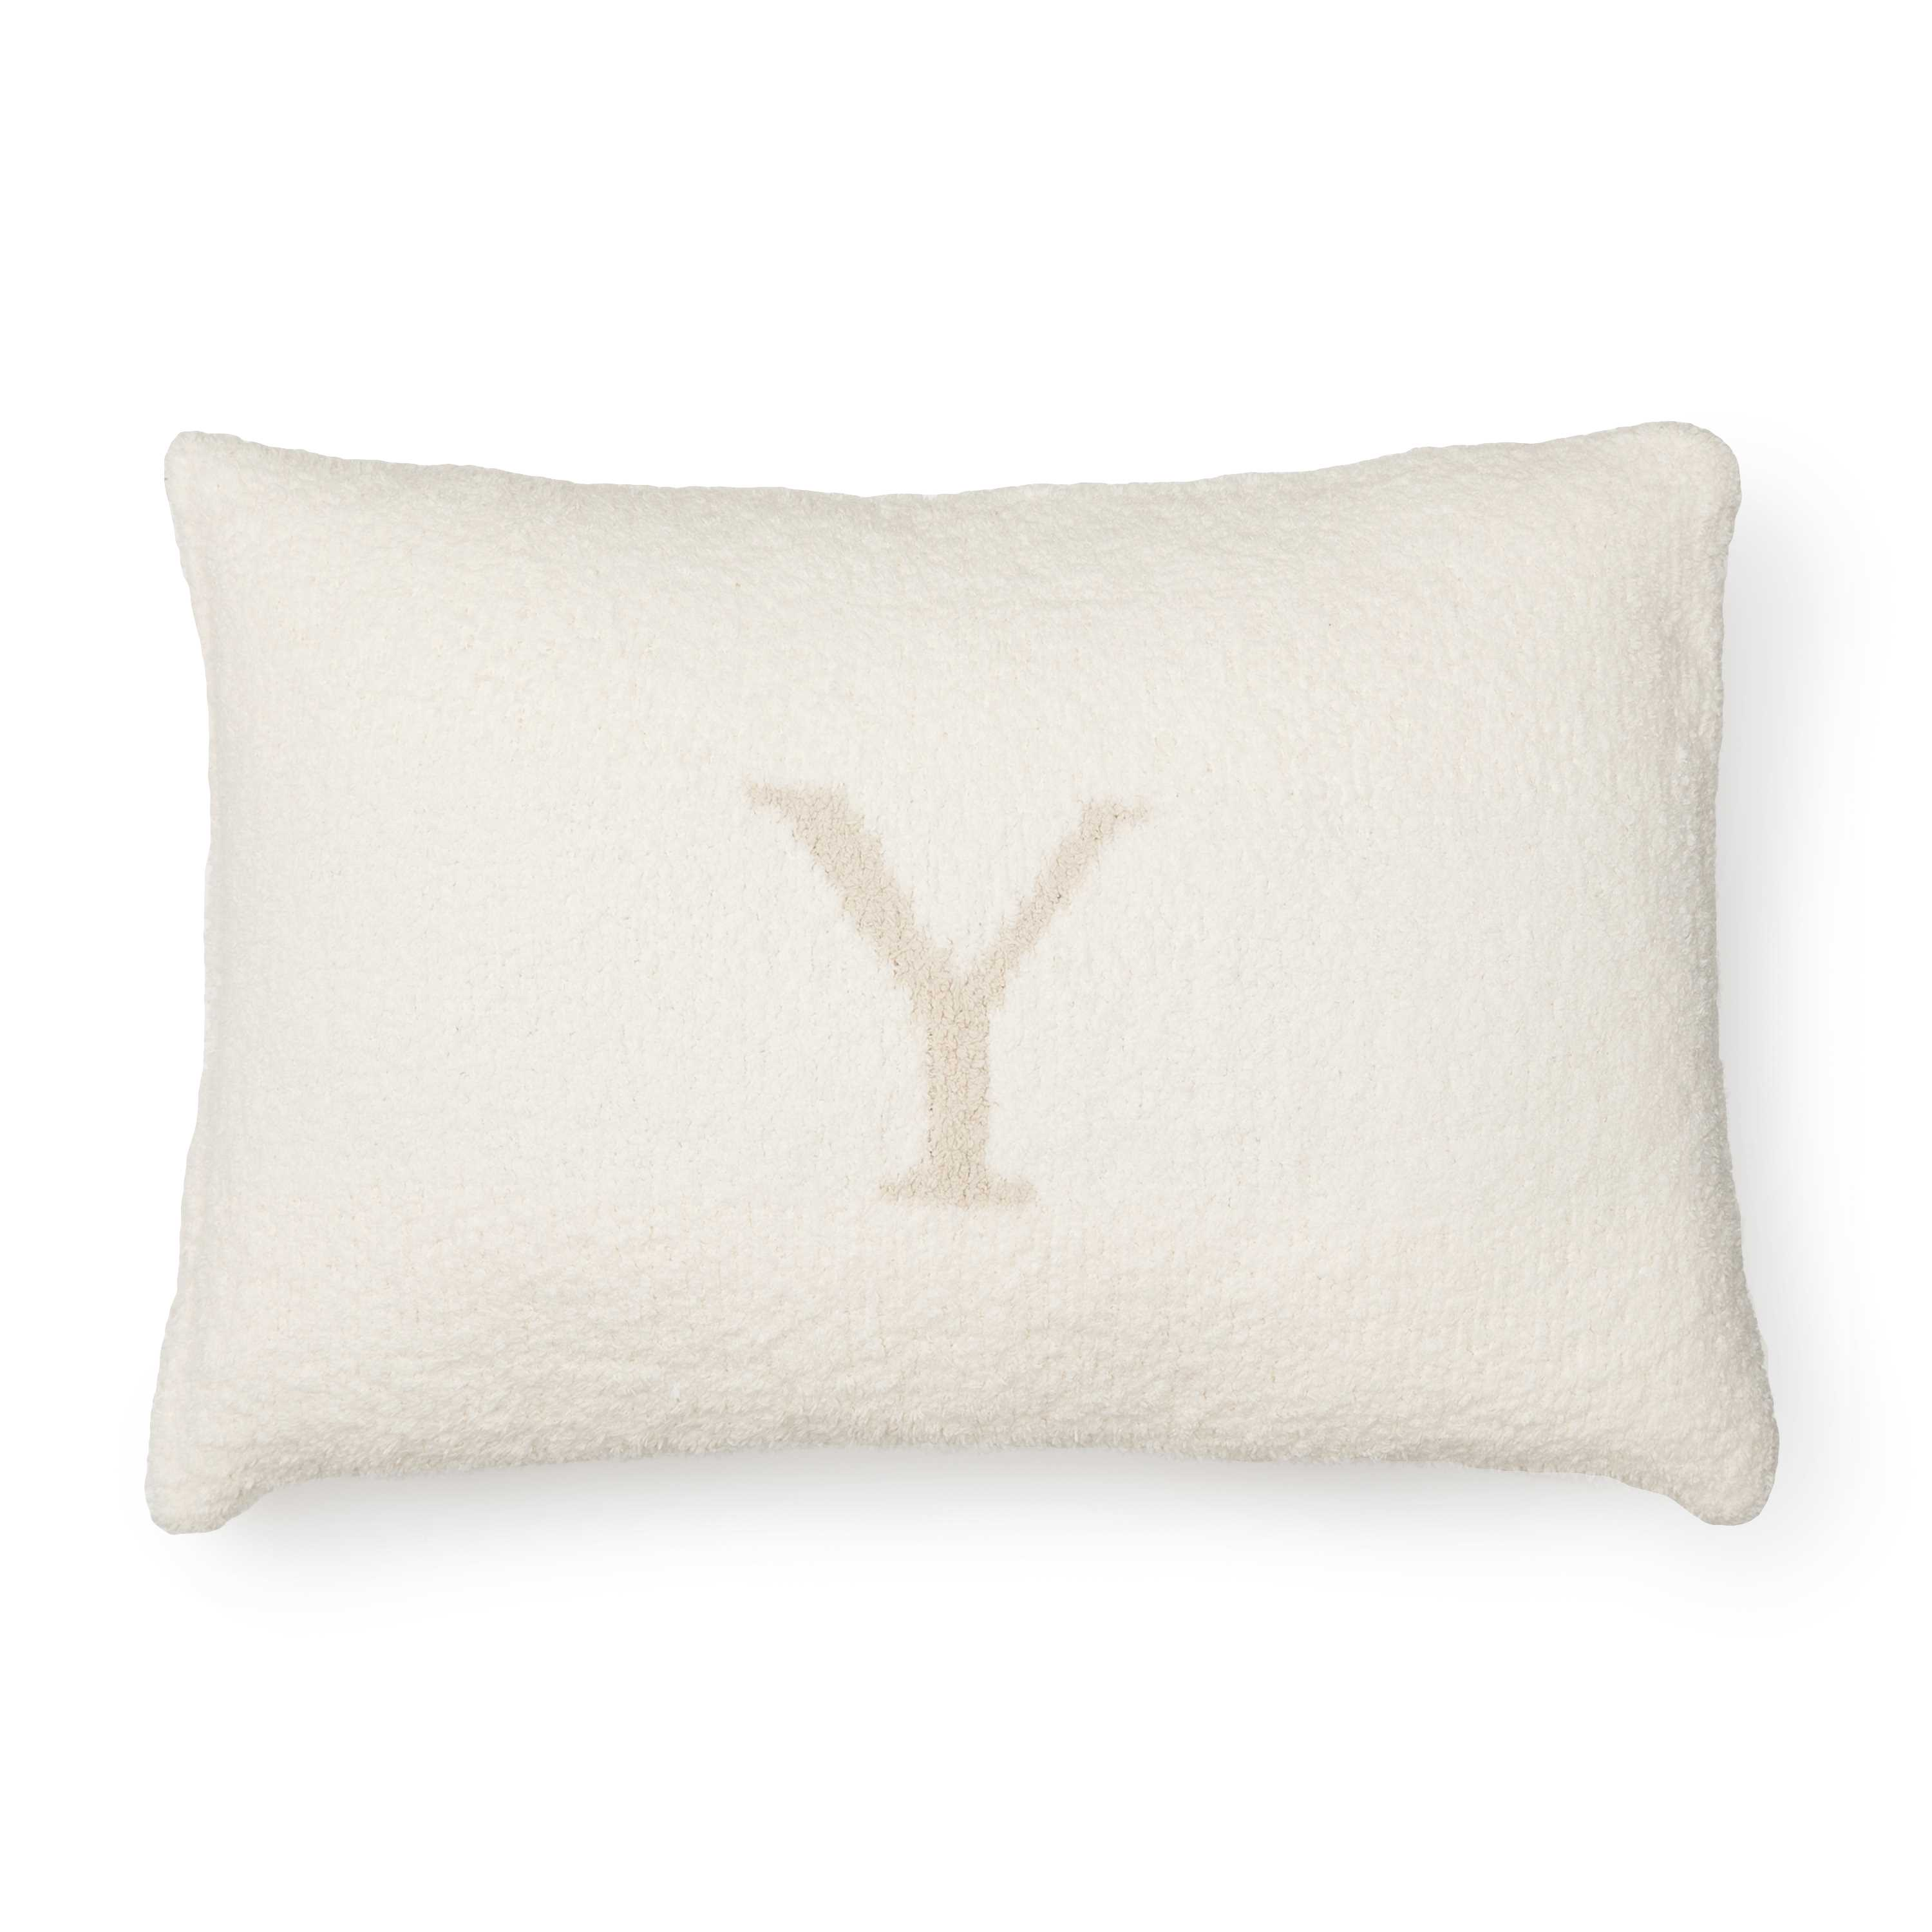 PILLOW CASE/INITIAL